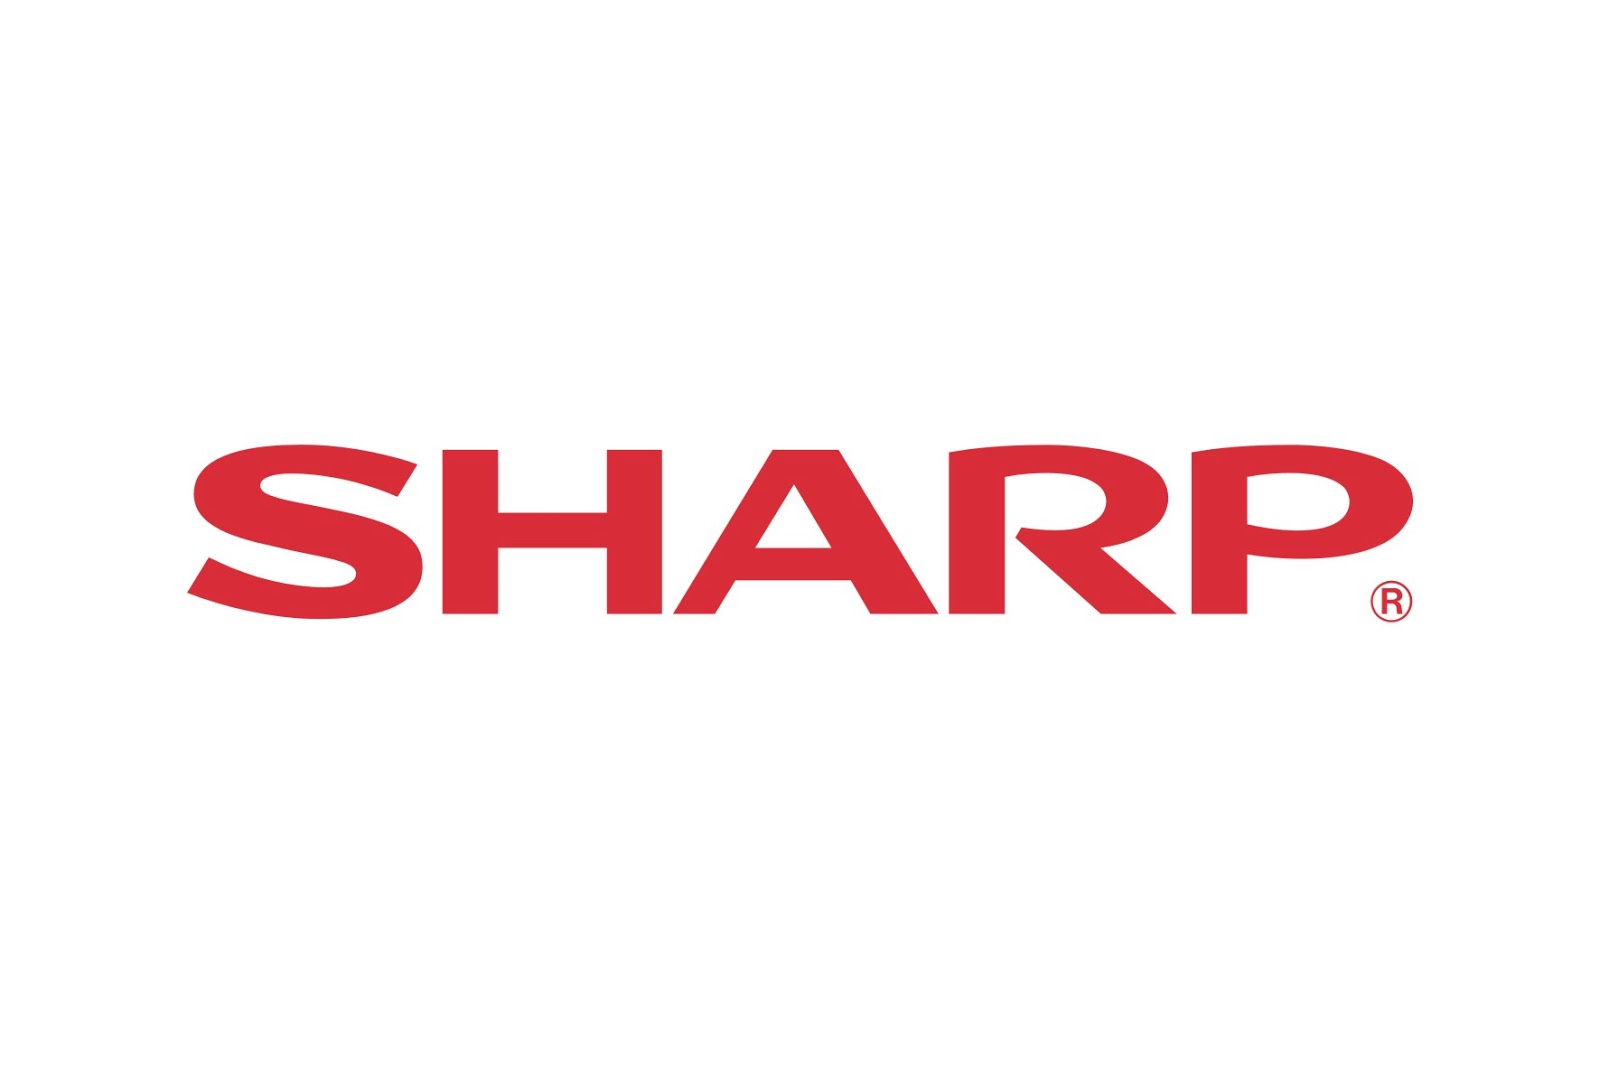 Sharp Logo Wallpaper